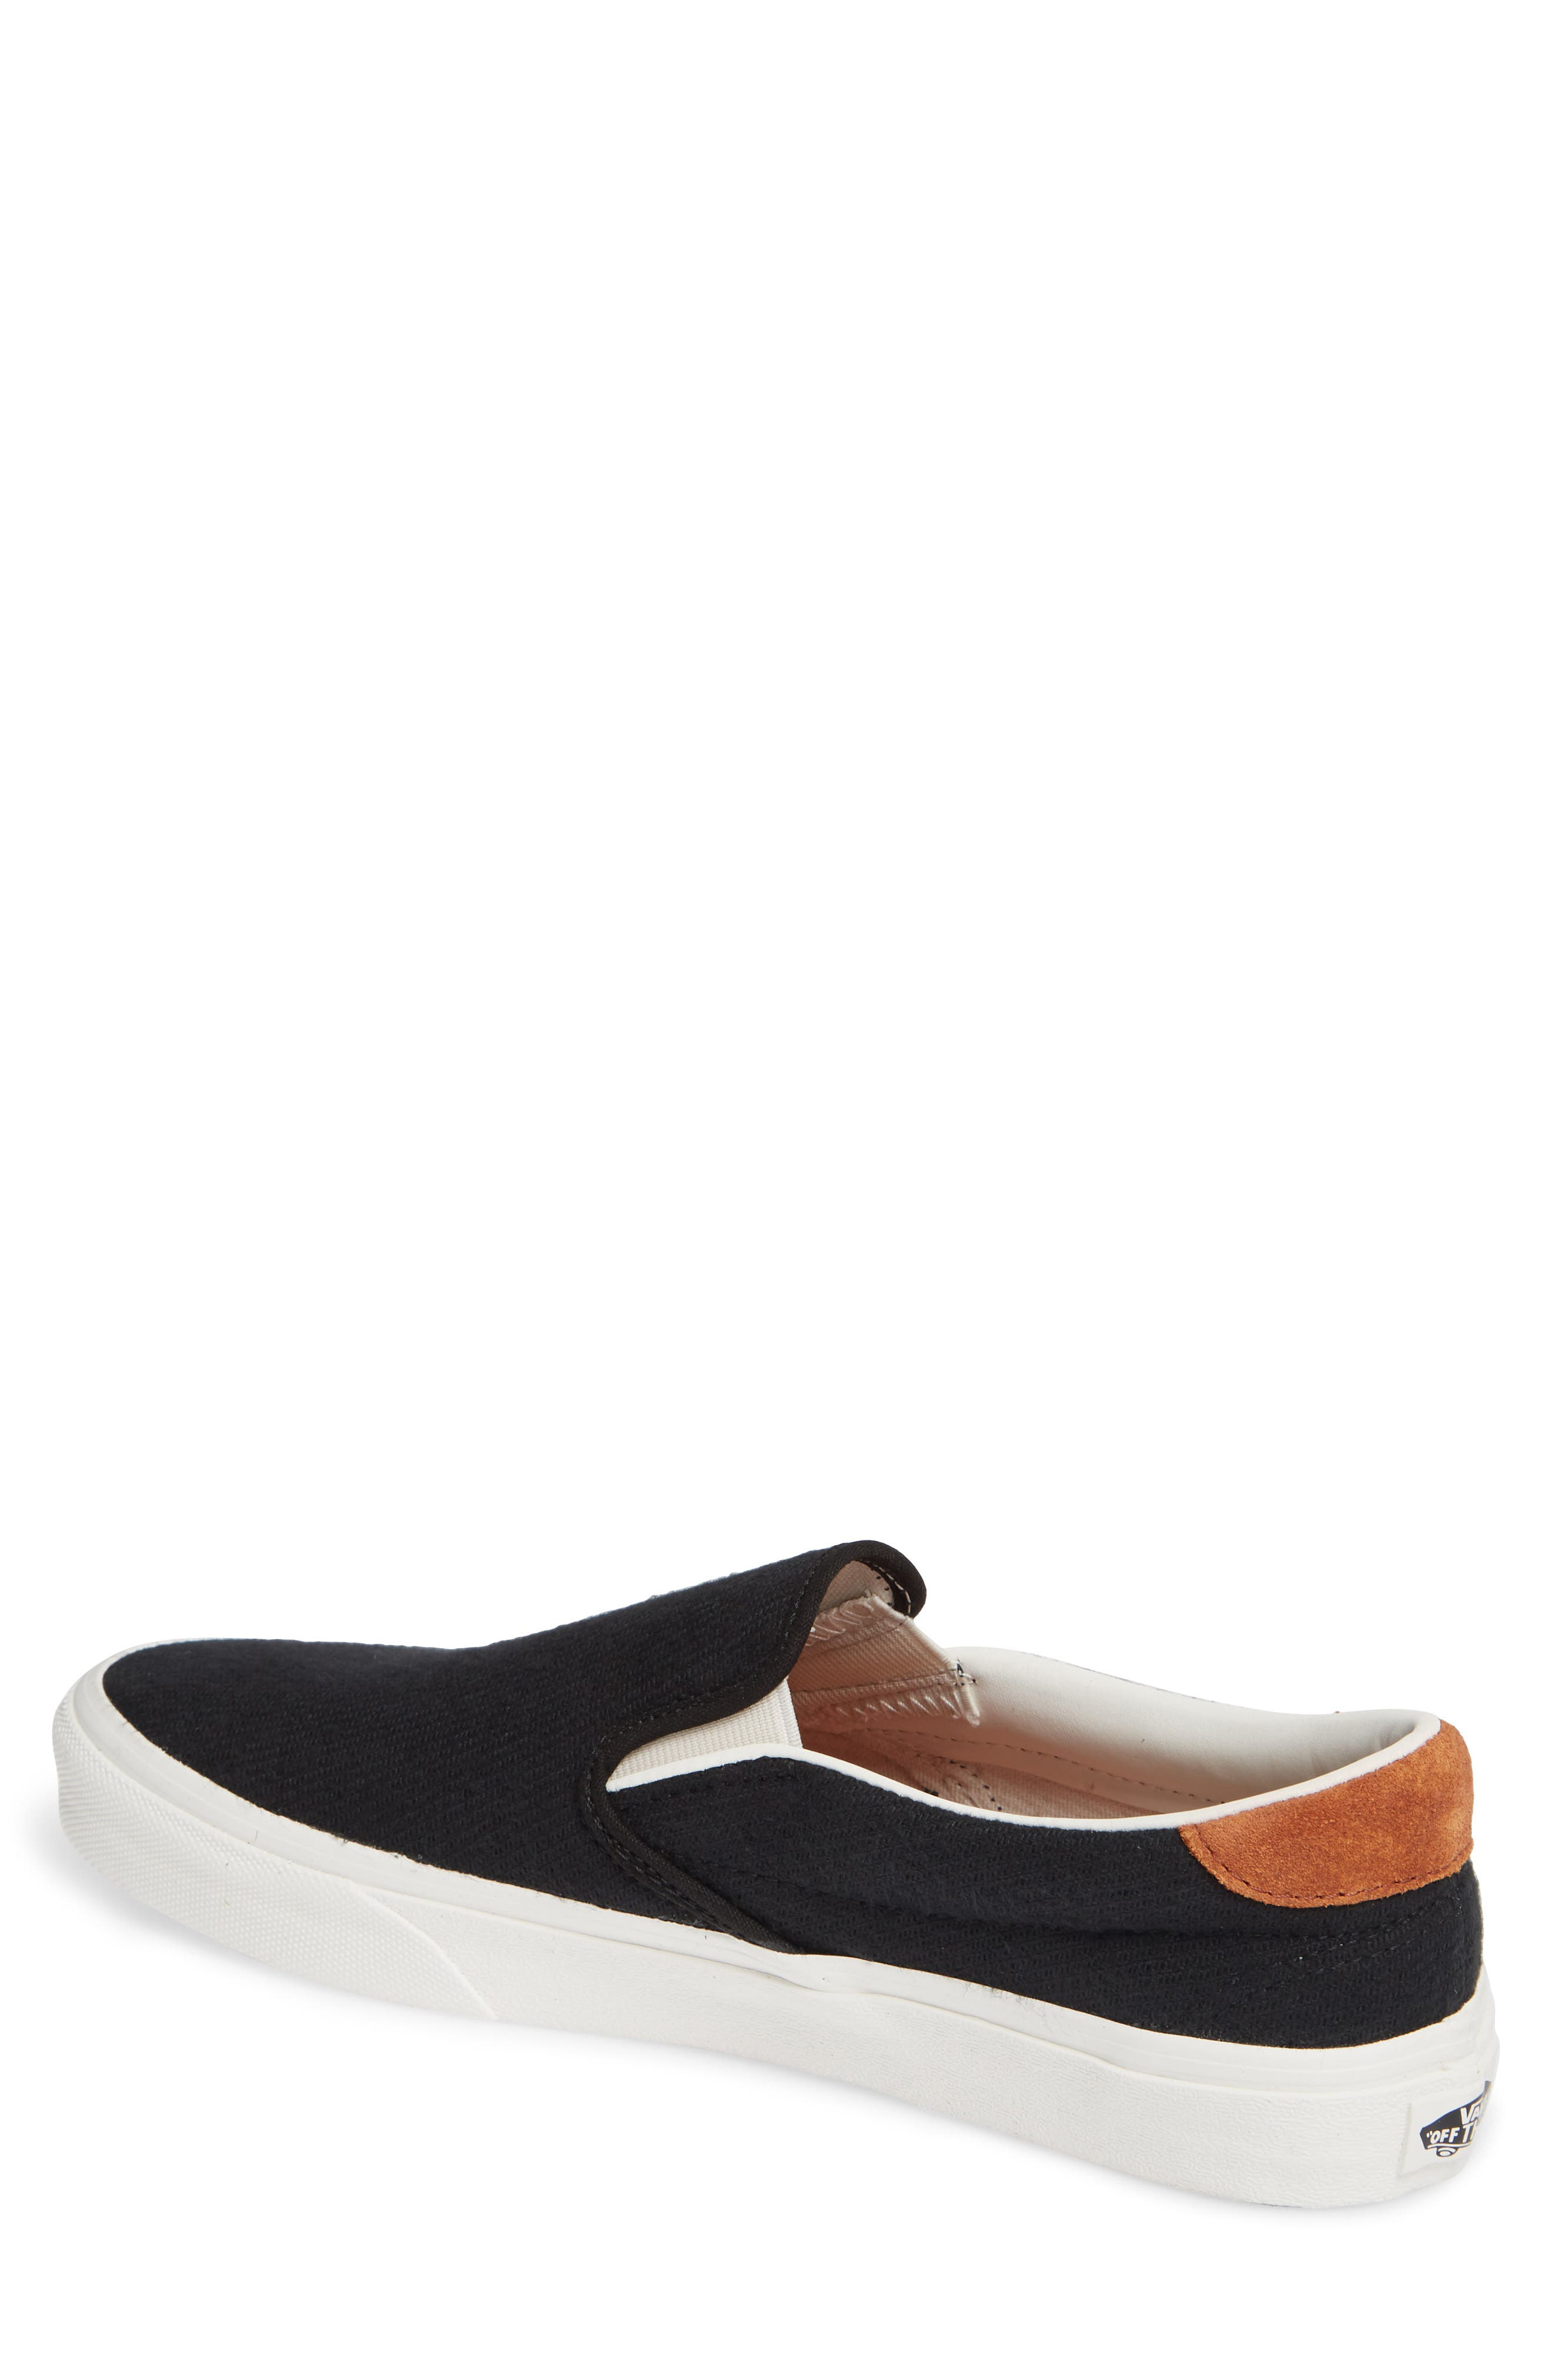 ,                             59 Classic Slip-On Sneaker,                             Alternate thumbnail 2, color,                             002